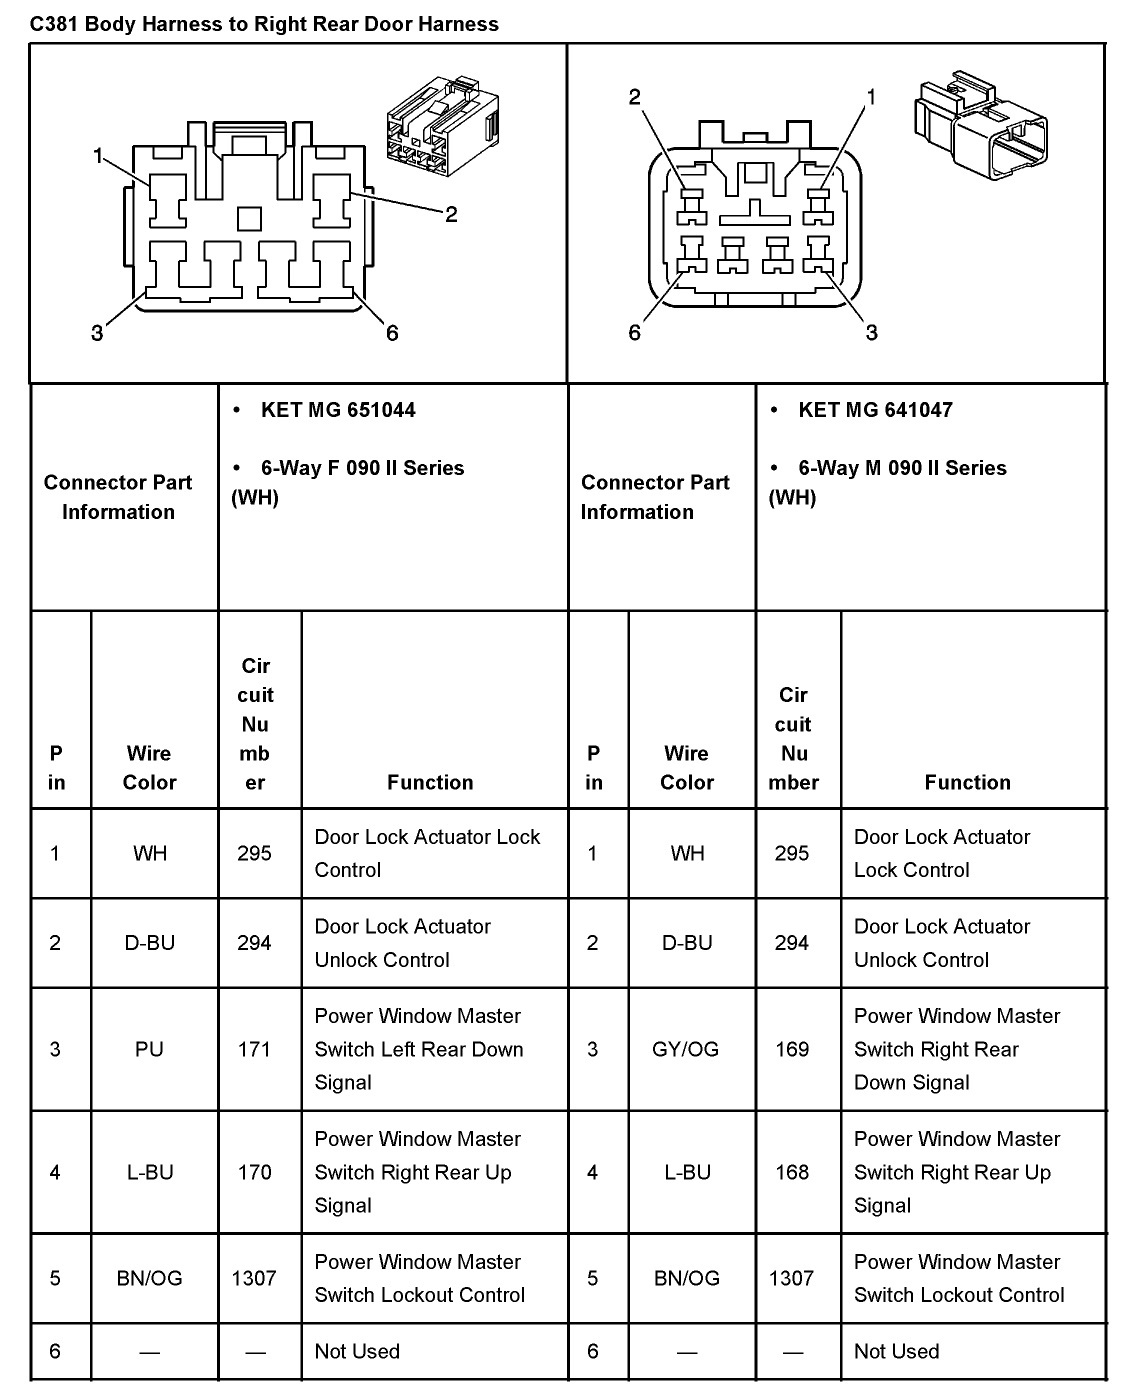 chevrolet aveo wiring harness connectors wiring diagram rh blaknwyt co 2007 chevy aveo wiring harness chevy aveo stereo wiring harness